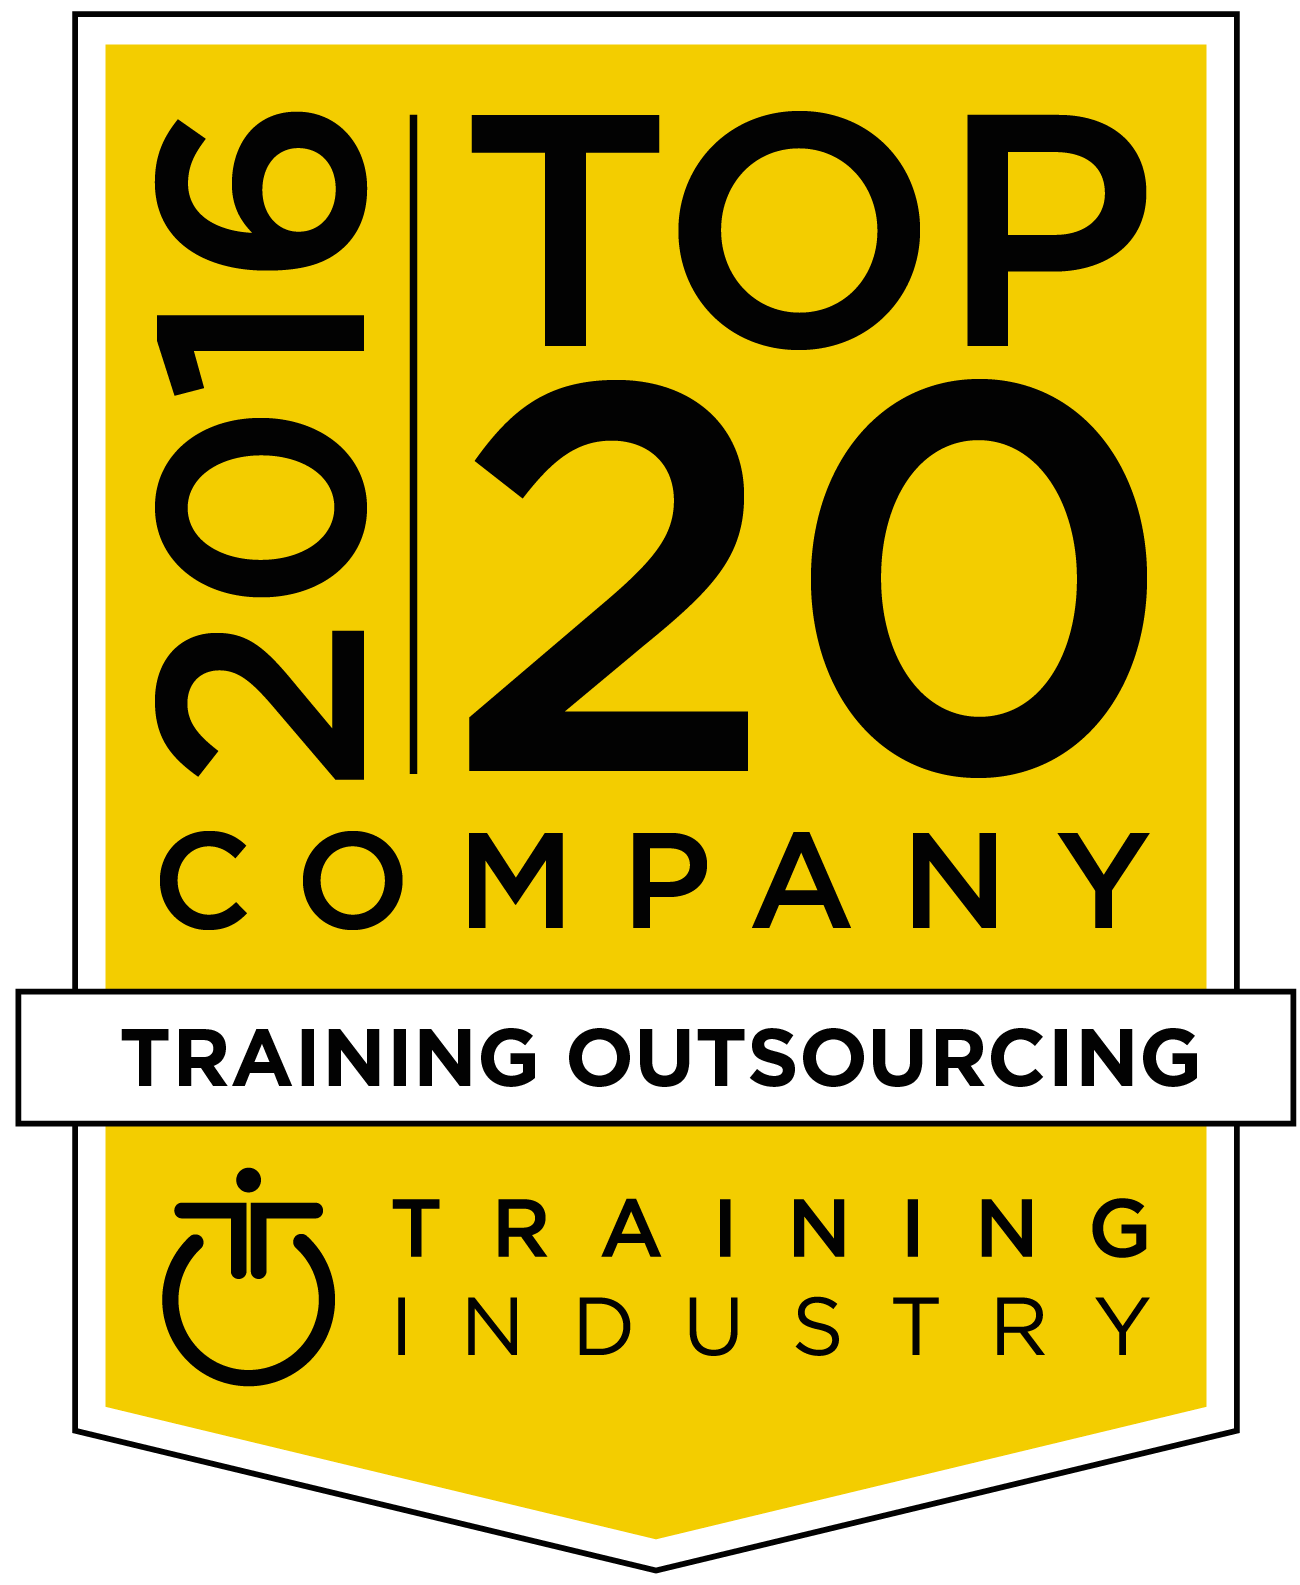 Top 20 Company Training Outsourcing from Training Industry, Inc.